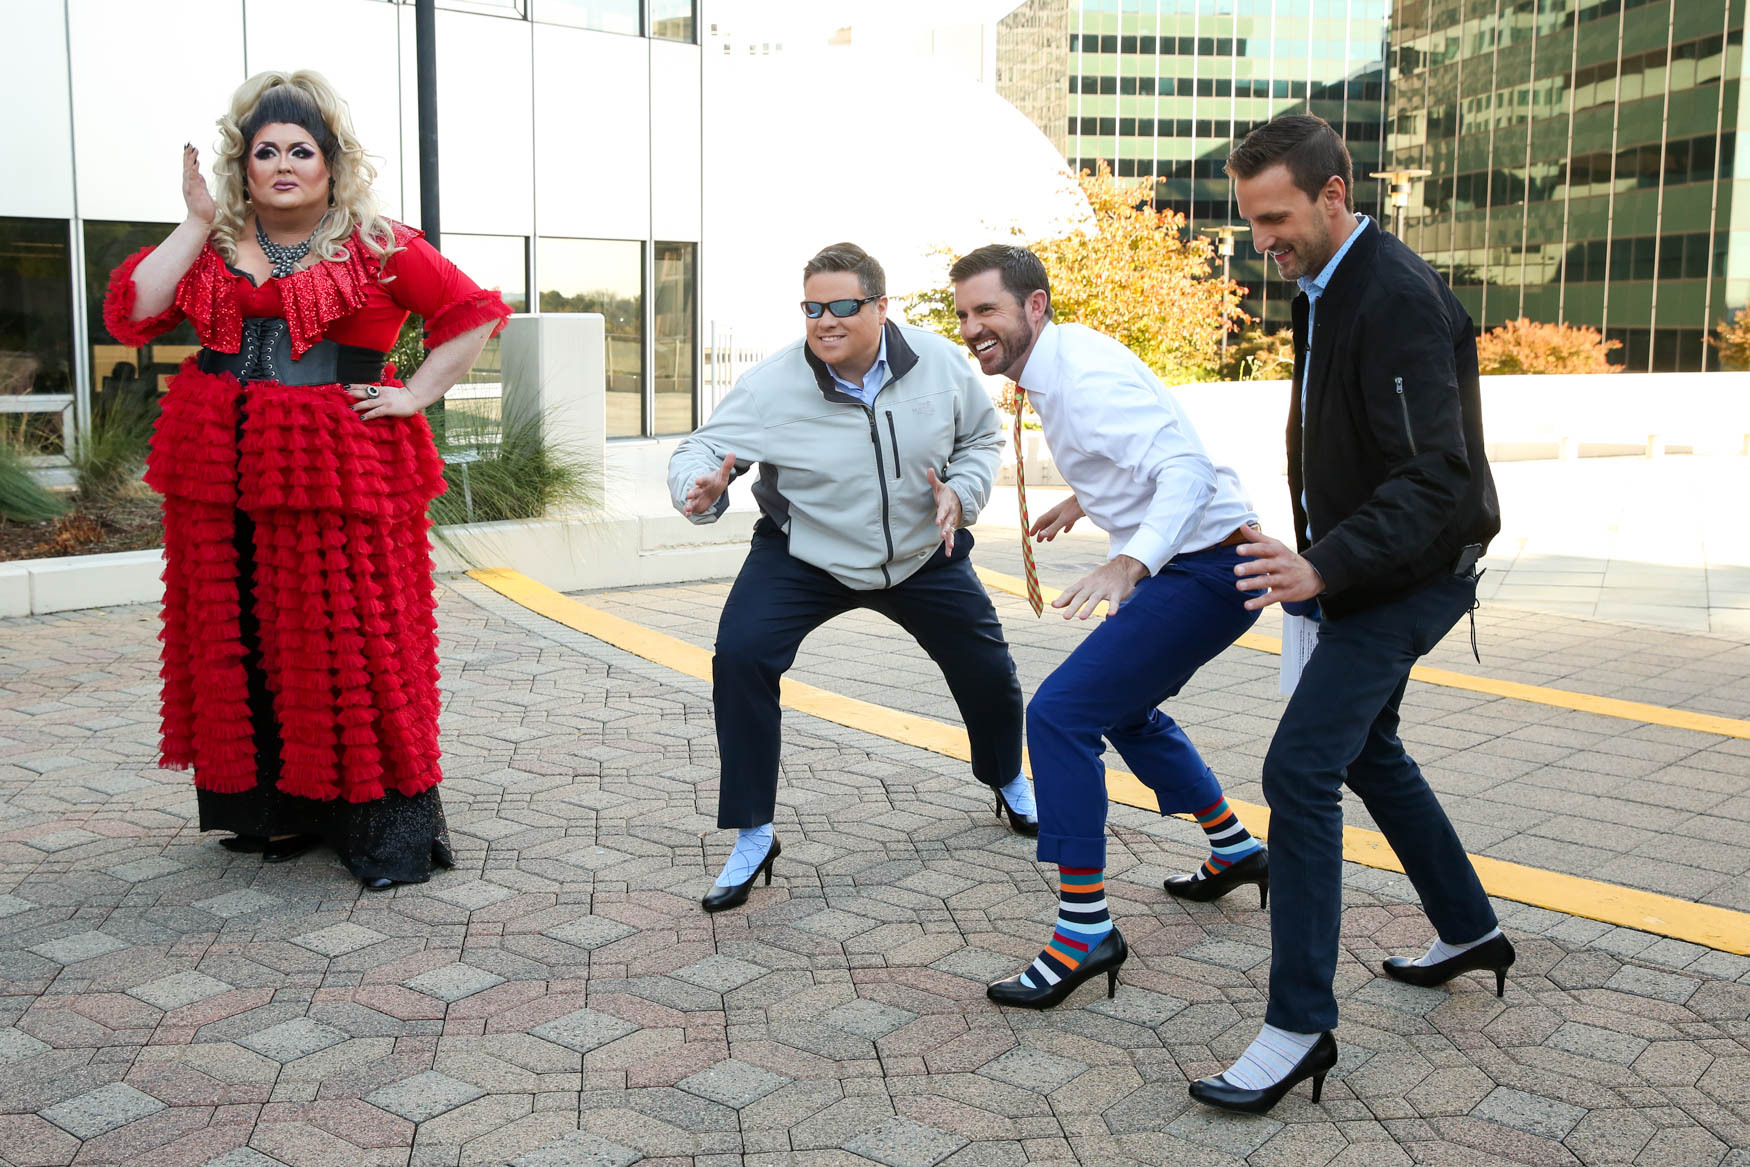 The 17th Street High Heel race is a D.C. tradition, but Good Morning Washington has its own version. Brian Van De Graff has won for several years in a row, but this year the crown went to GMW anchor Jessob Reisbeck.{ } (Amanda Andrade-Rhoades/DC Refined)